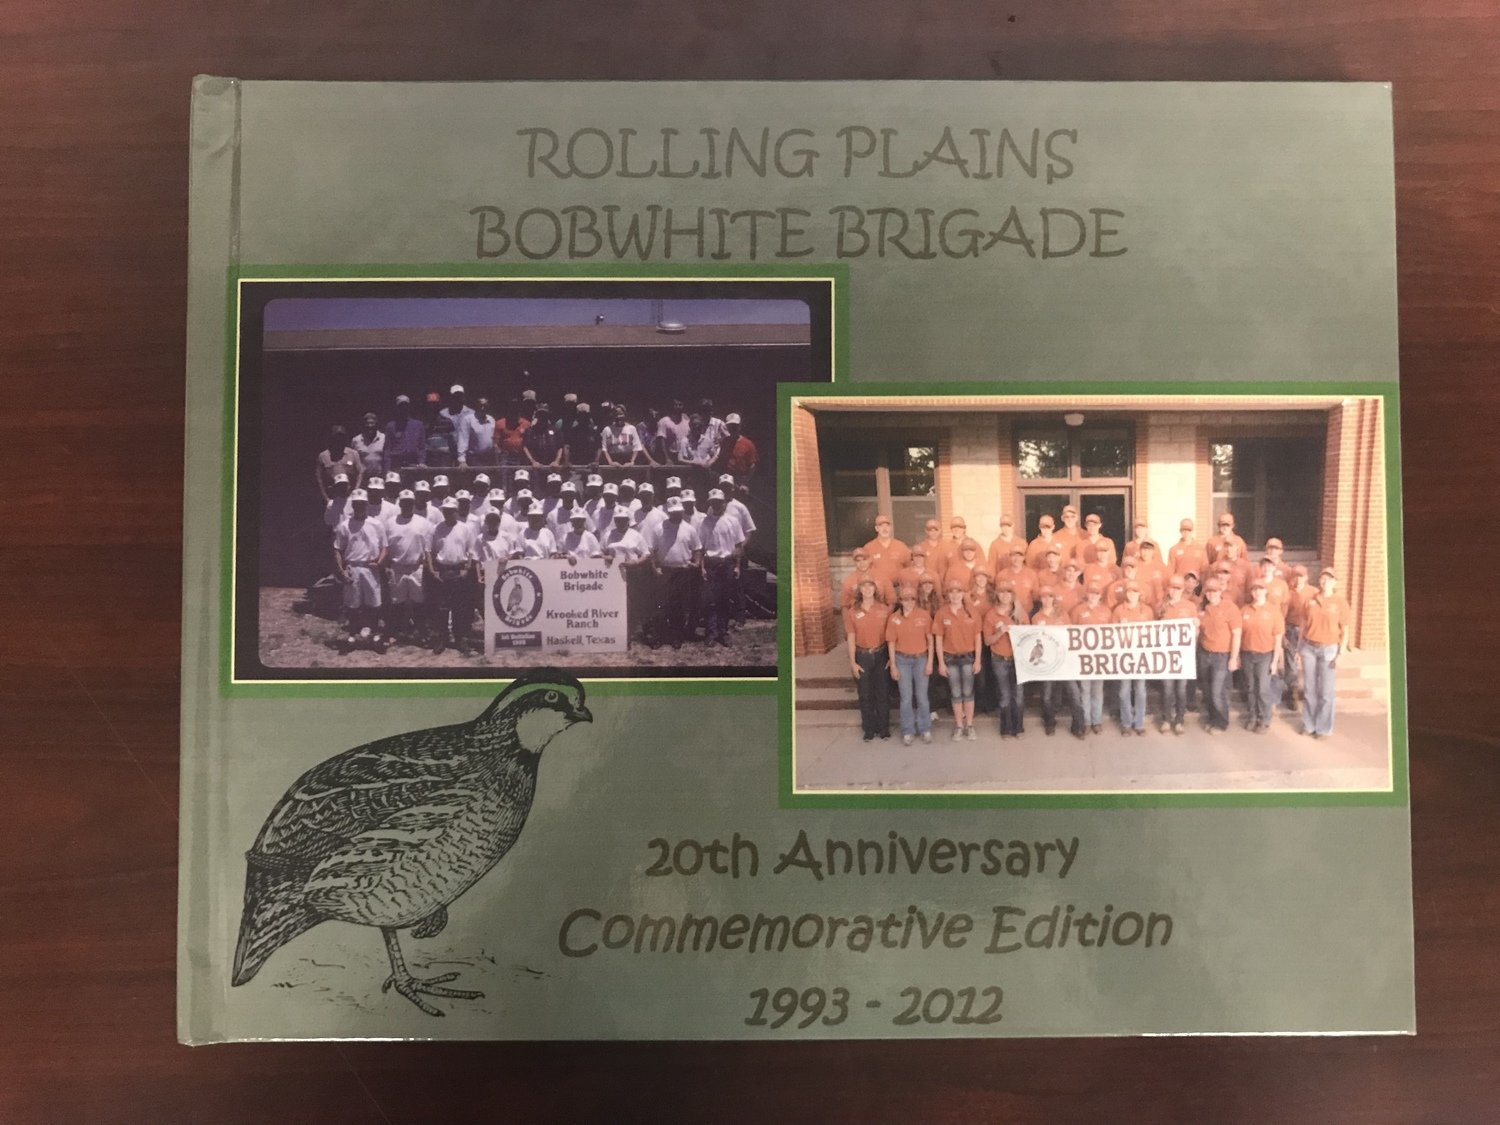 Rolling Plains Bobwhite Brigade 20th Anniversary Commemorative Book